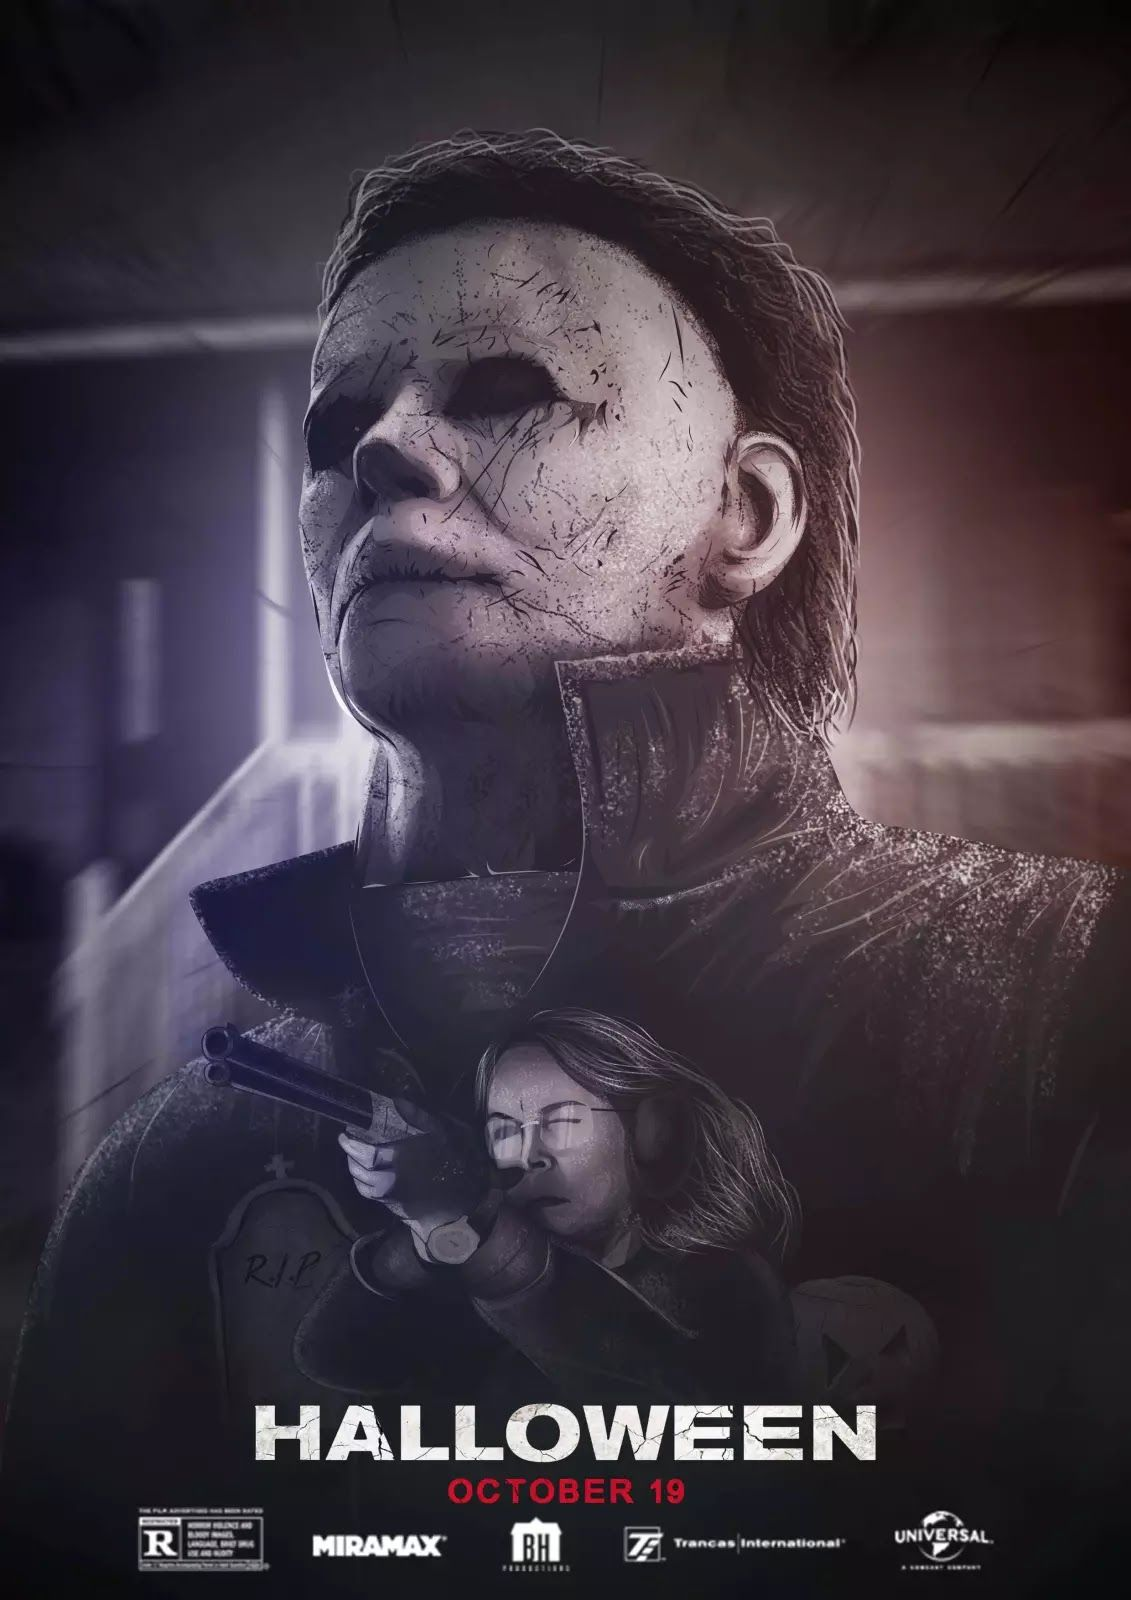 Pin By Jay Munoz On Halloween Michael Myers Halloween Michael Myers Art Michael Myers